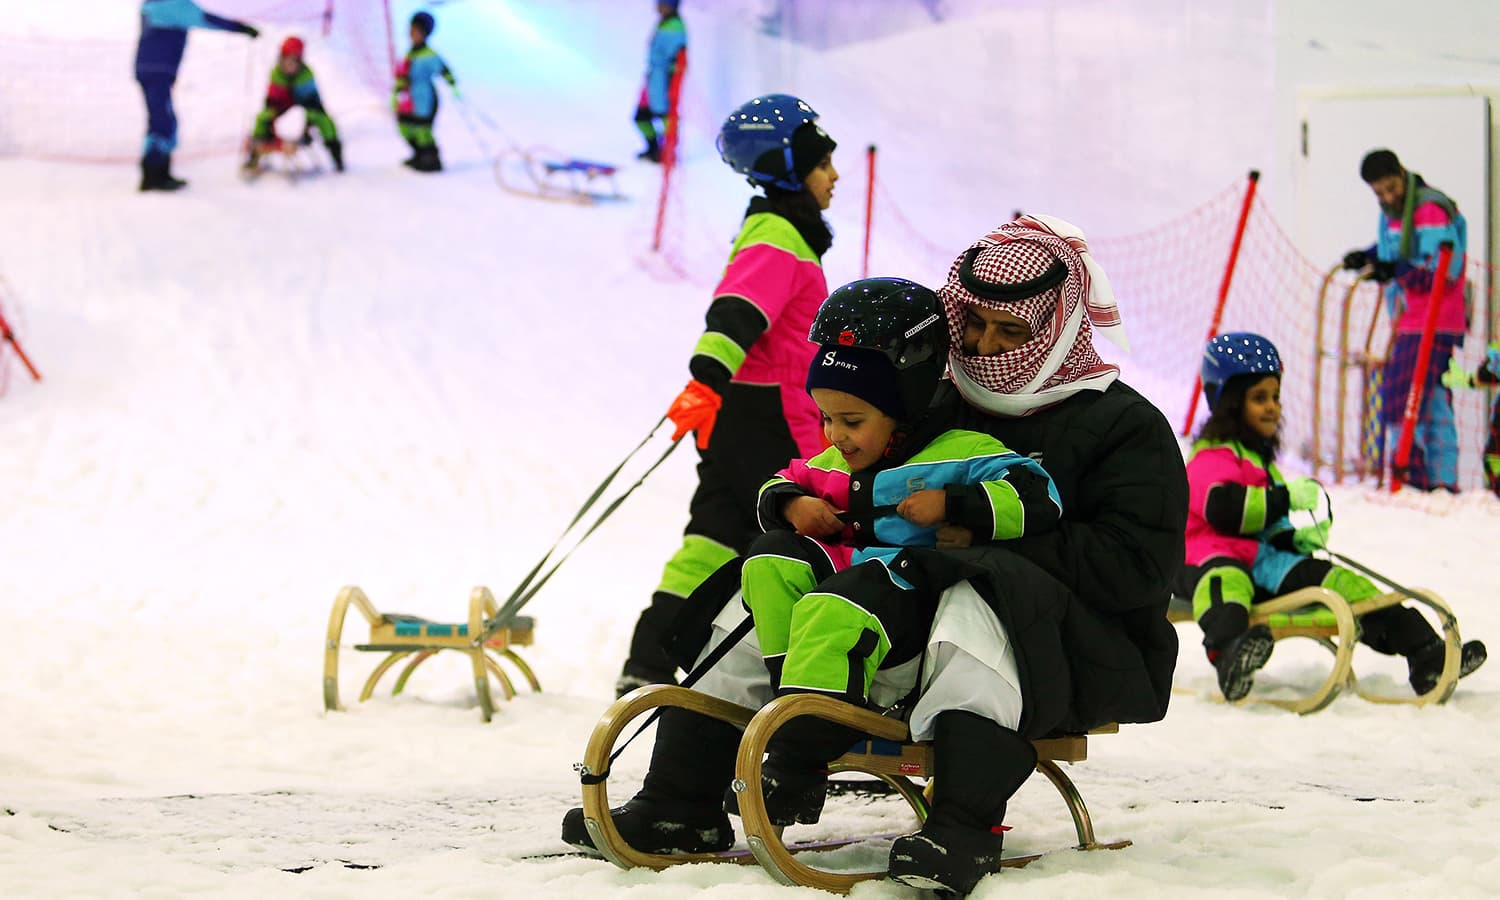 """This file photo taken on July 20, 2016 shows a Saudi man and a boy sliding on a sledge at the indoor snow theme park """"Snow City"""" in the Al-Othaim Mall Rabwa in the capital Riyadh. ─ AFP"""